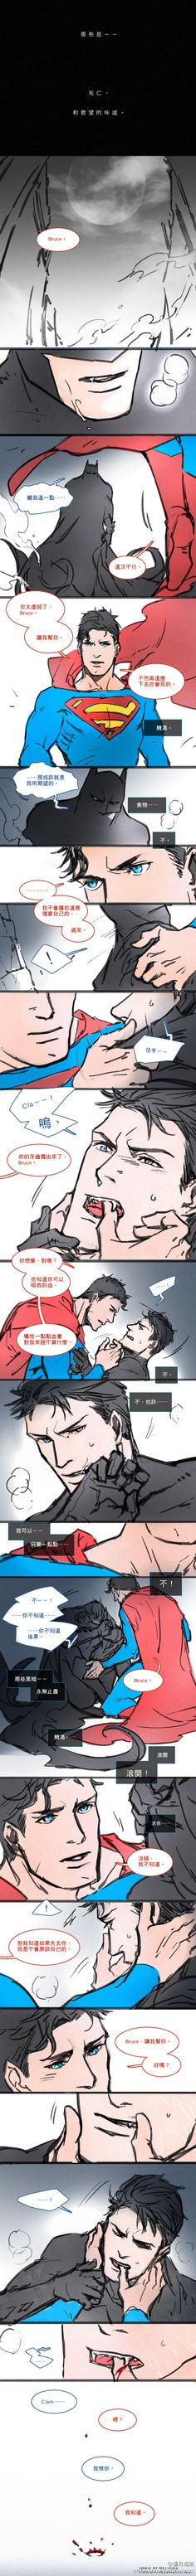 Superbat. If you can't read it, Bruce is dying, he needs to drink blood. Clark offers but Bruce declines, not wanting to hurt him and that Clark doesn't know the consequences. Clark says that he wouldn't forgive himself if he let Bruce die.